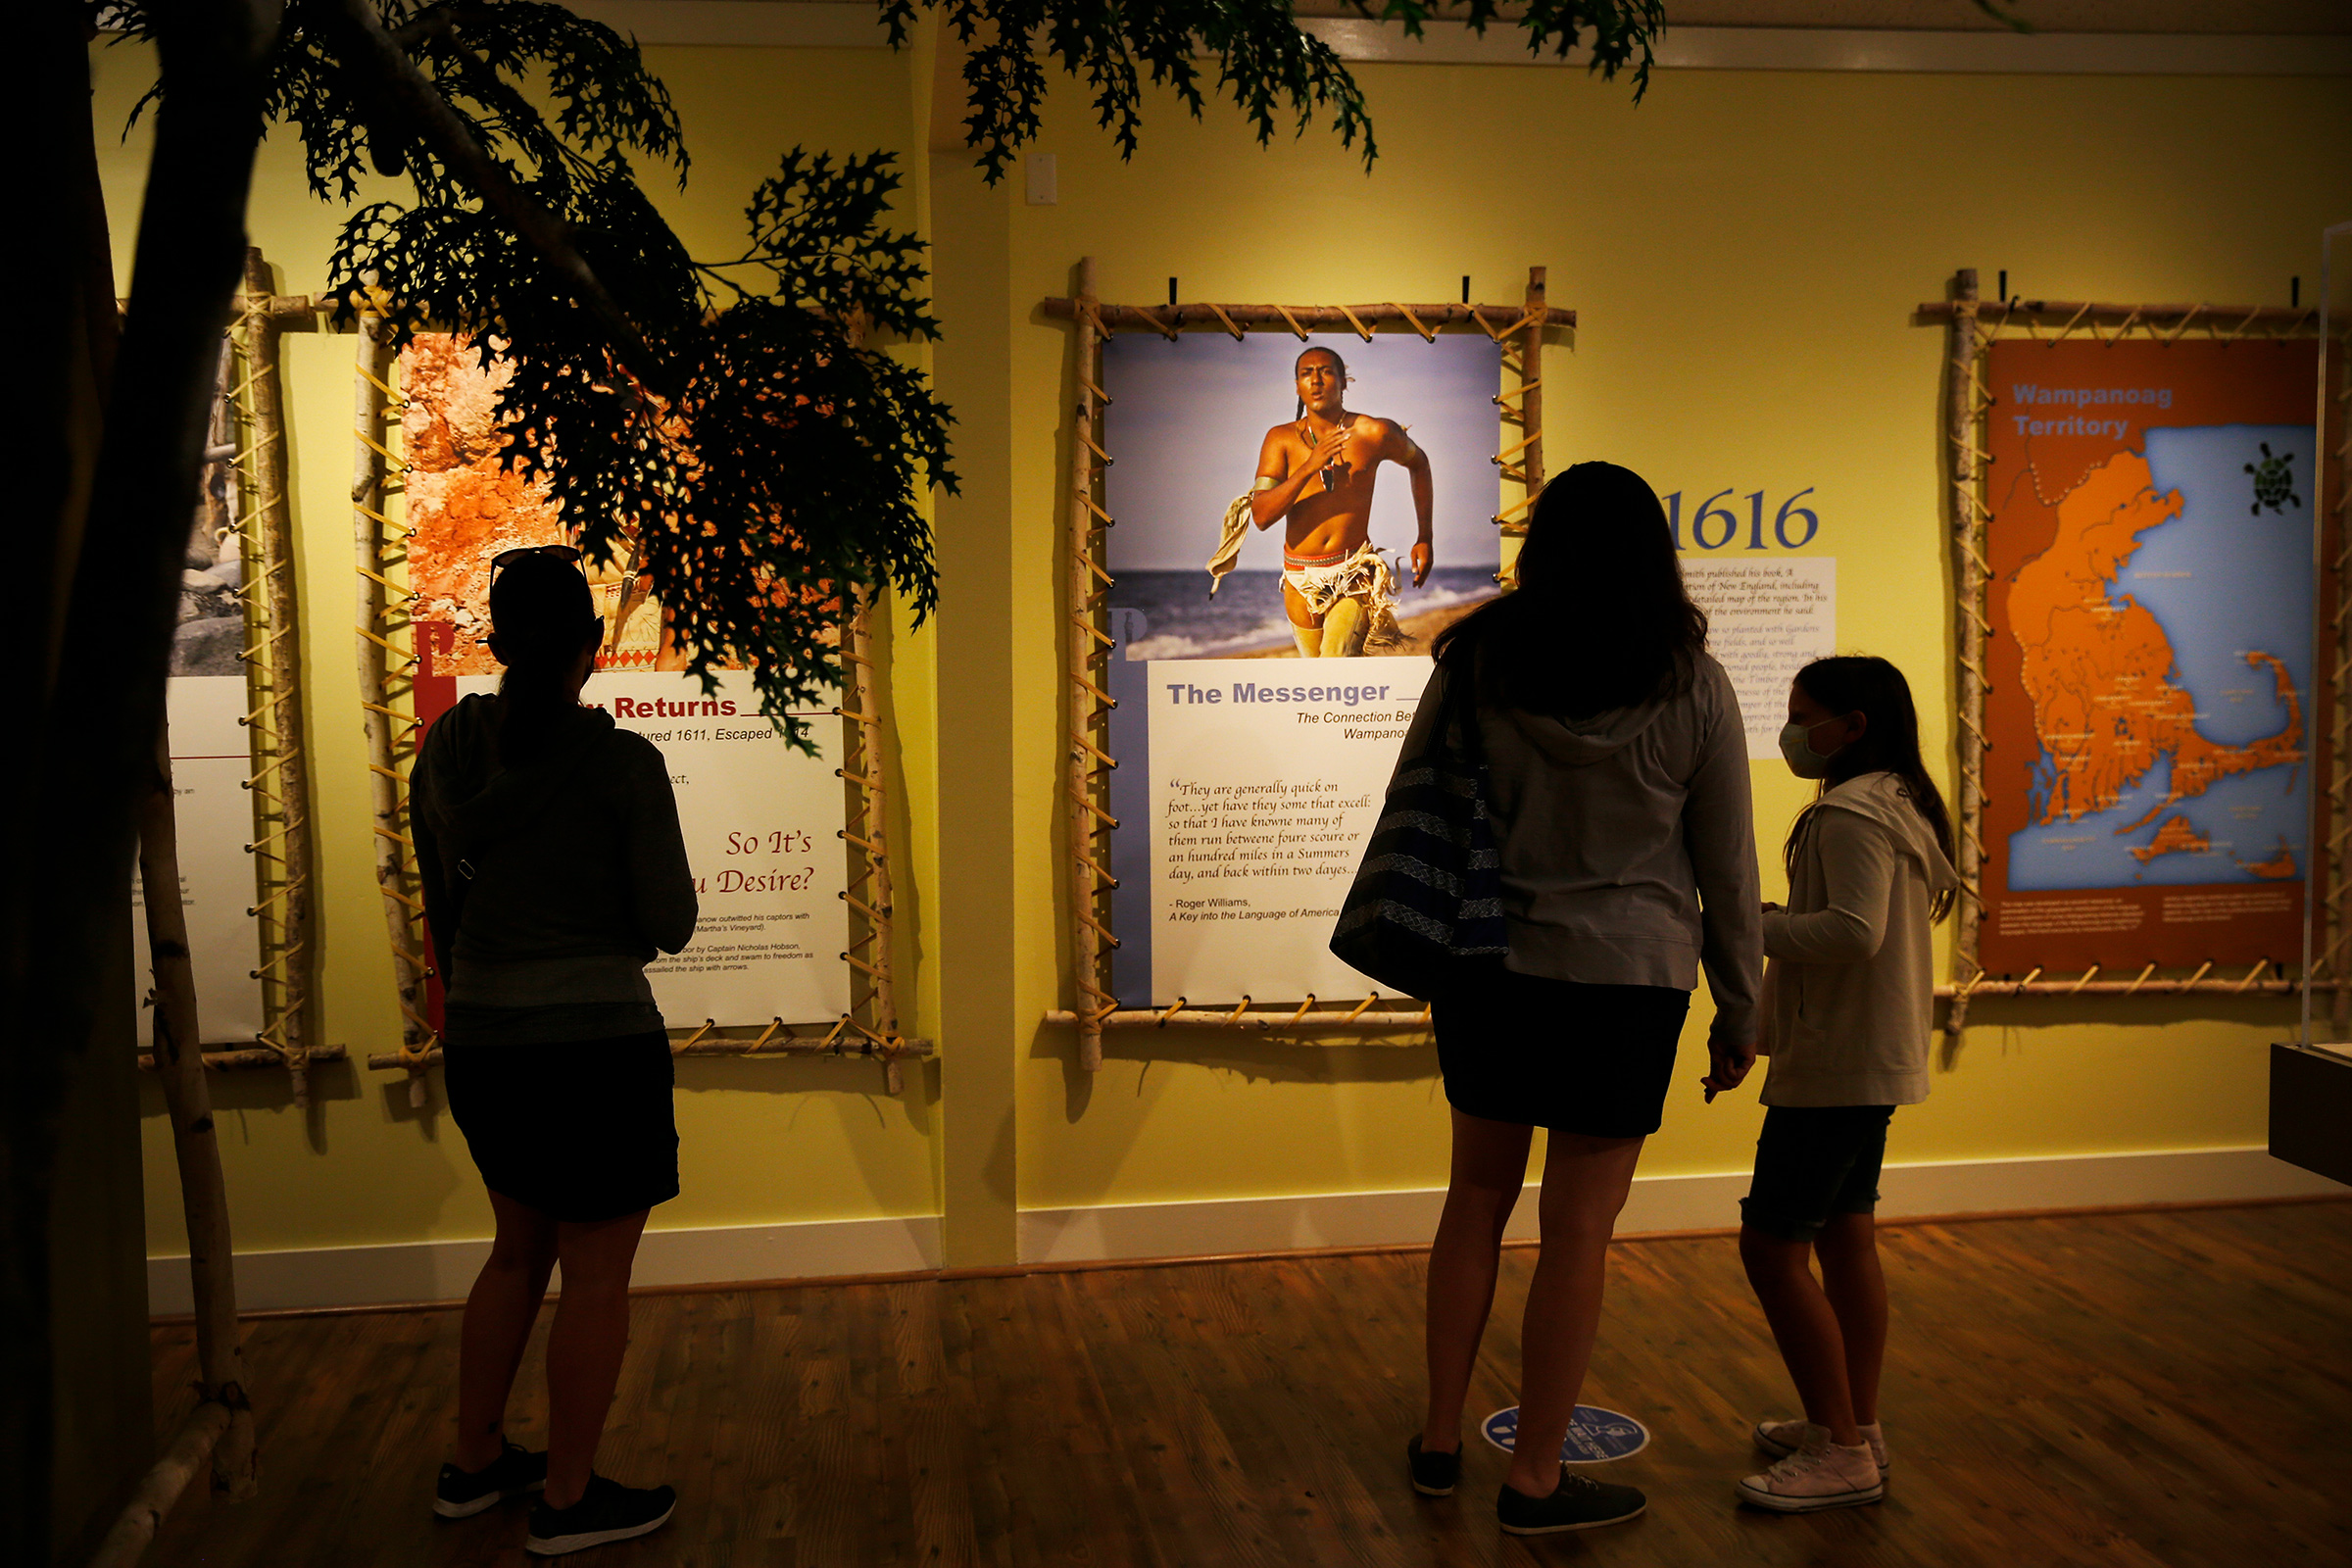 Visitors to the Pilgrim Monument and Provincetown Museum pause to examine a new exhibit about early interactions between the Pilgrims and the Wampanoag tribe in Provincetown, MA on Aug. 27.